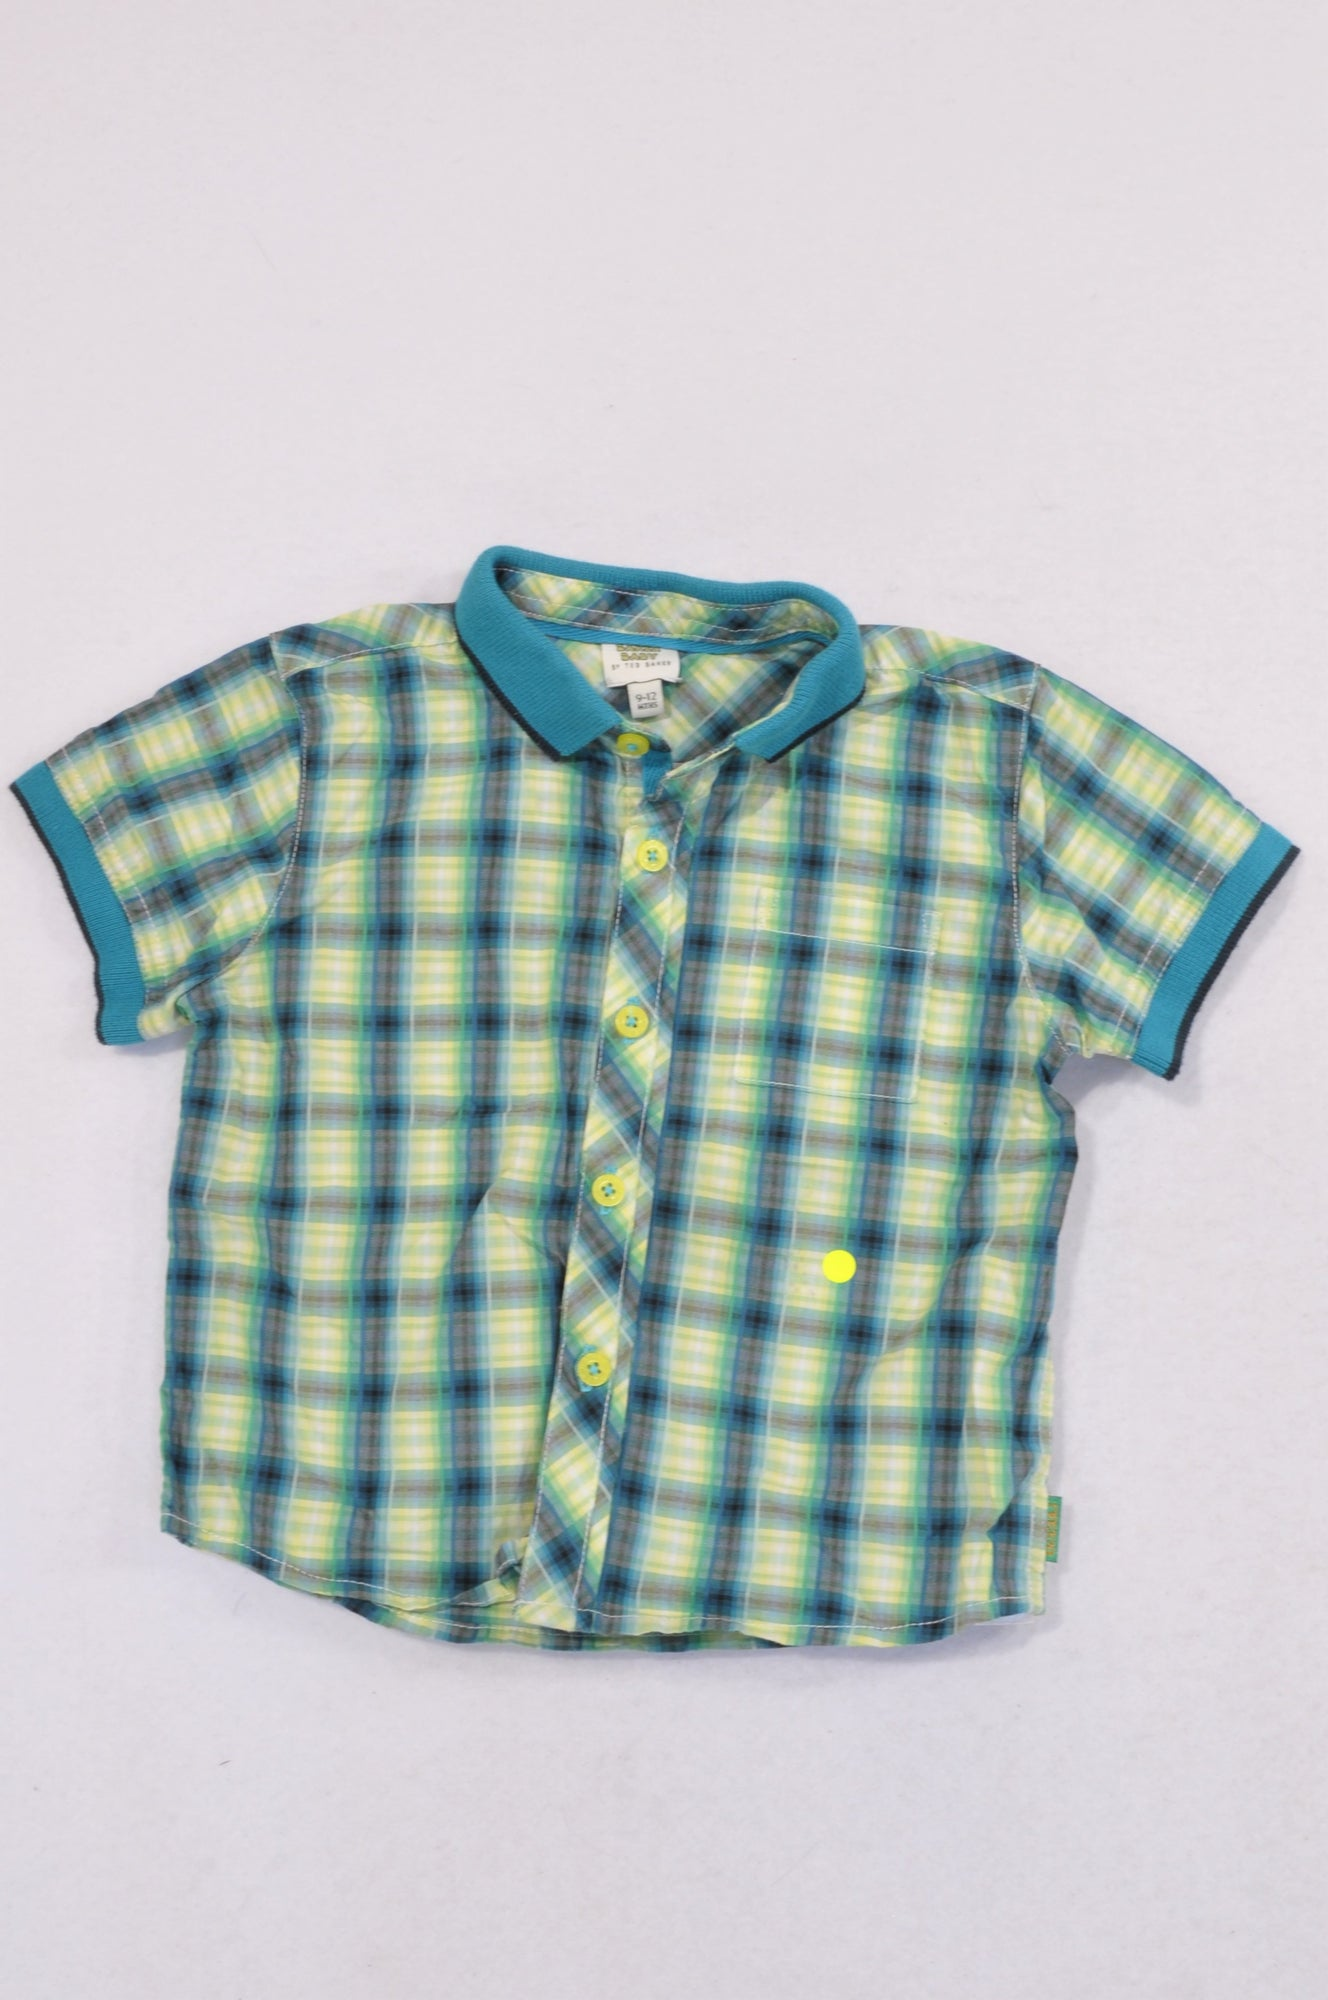 Baker Baby Lime & Blue Plaid Ribbed Trim Collared Shirt Boys 9-12 months